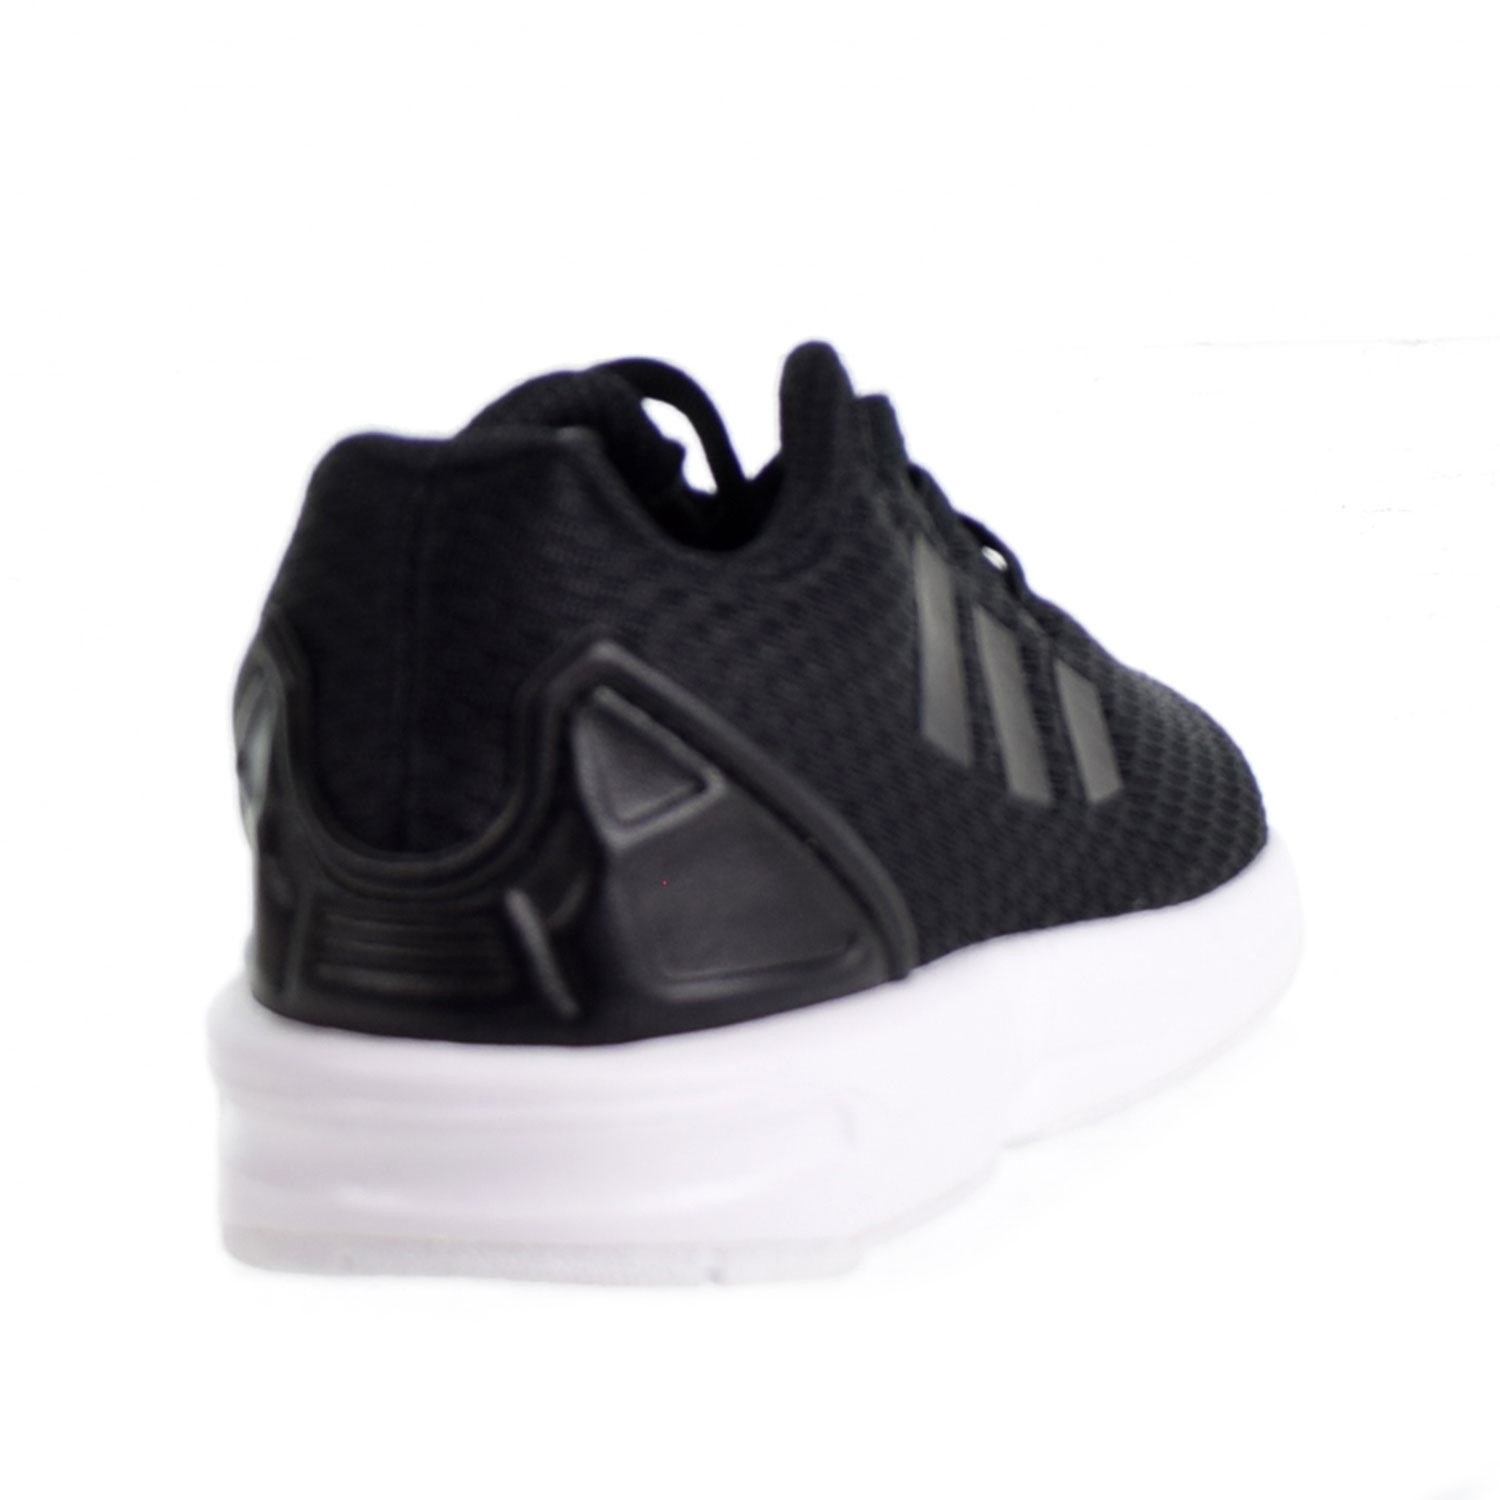 962526c0f9061 Adidas ZX Flux I Toddler s Shoes Black White M21301